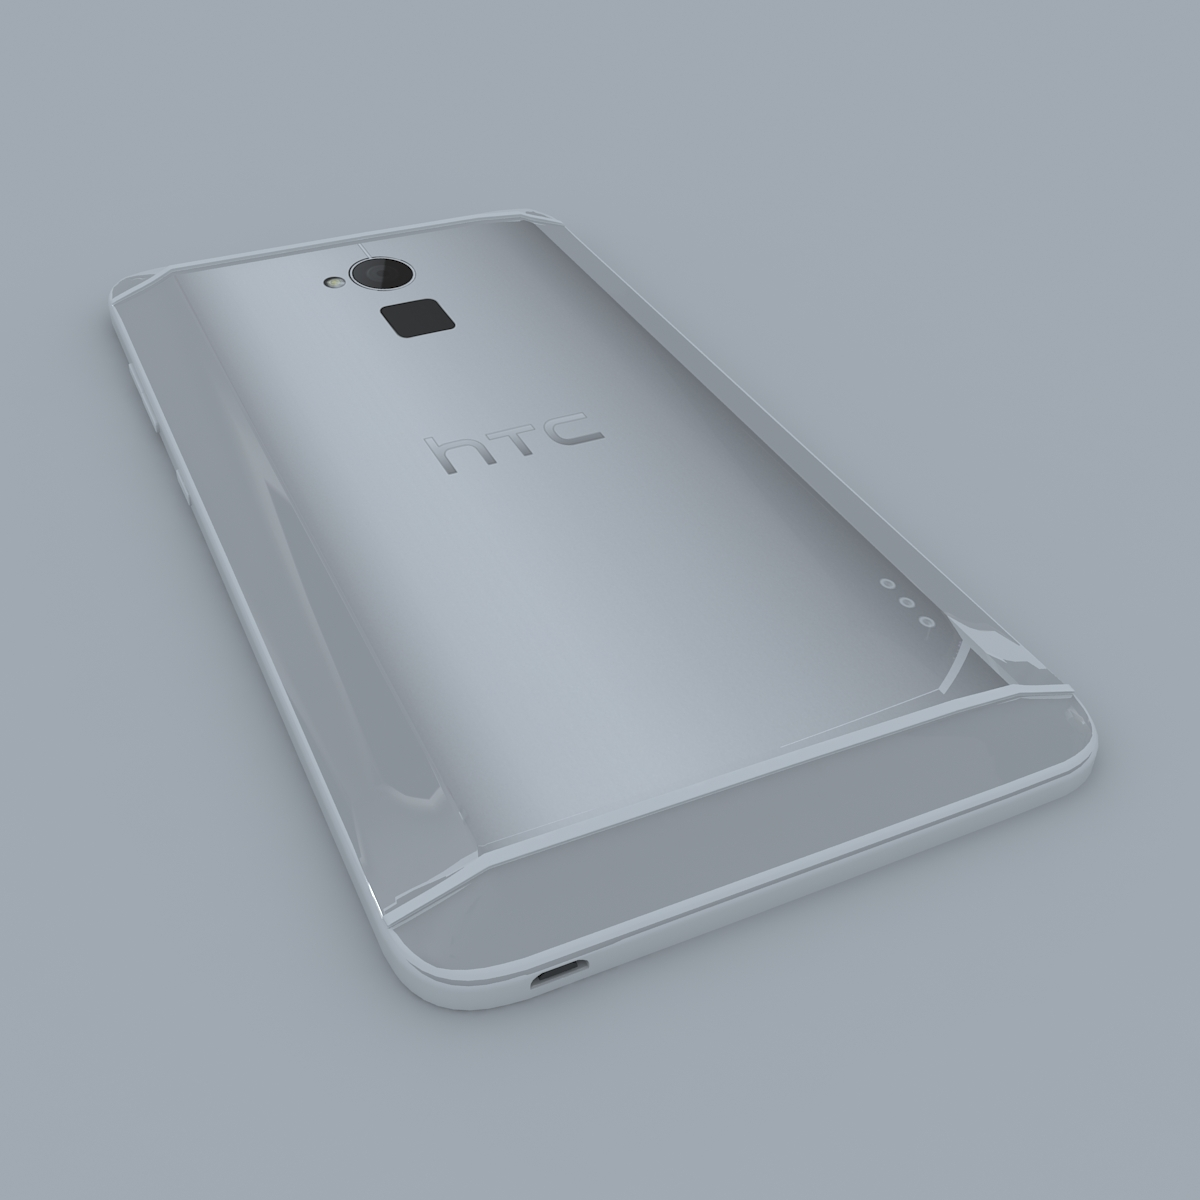 htc one max 3d model max c4d ma mb obj 158168